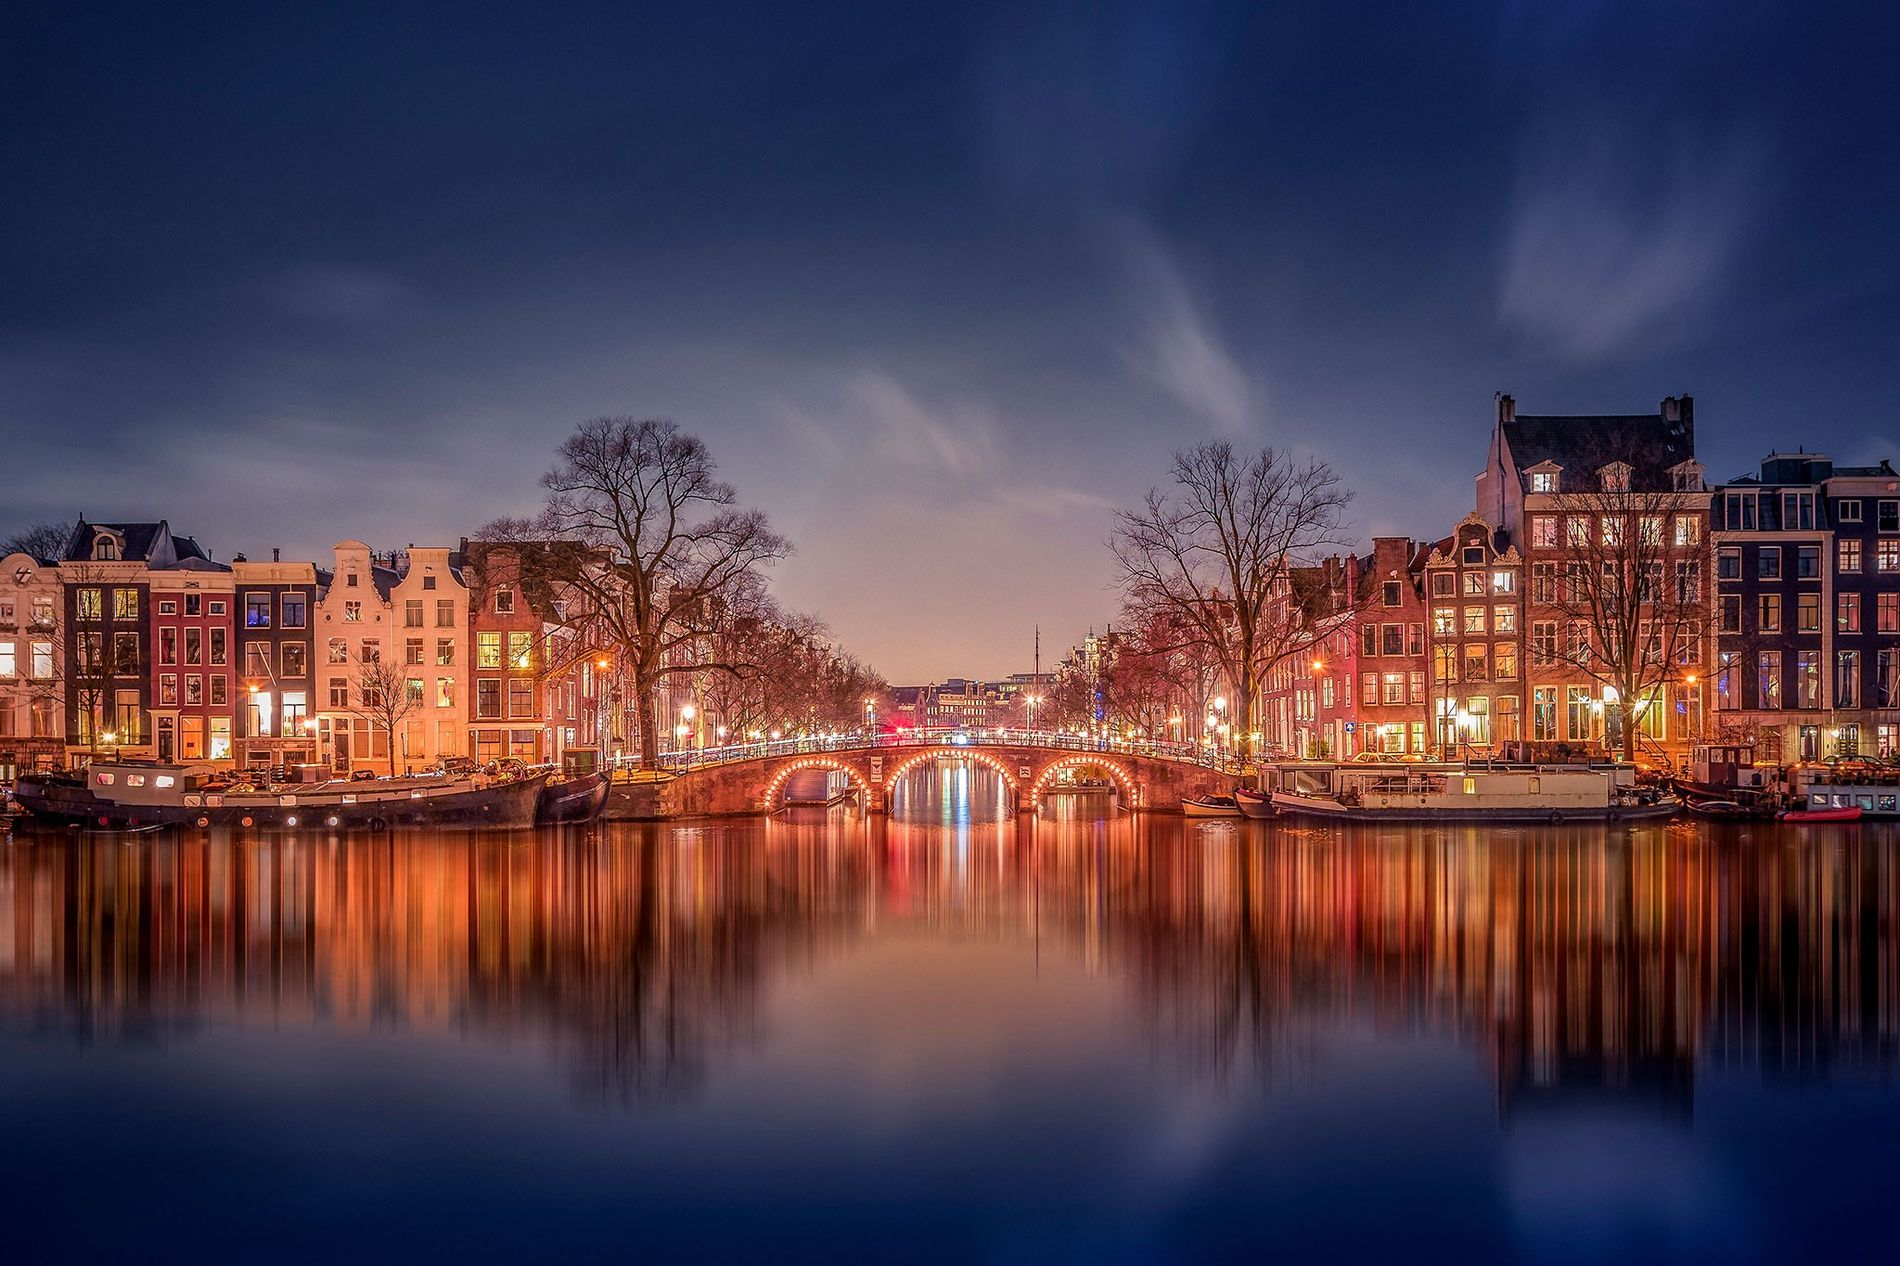 5.) The Netherlands. Amsterdam actually has 1281 bridges, three times as many as Venice.